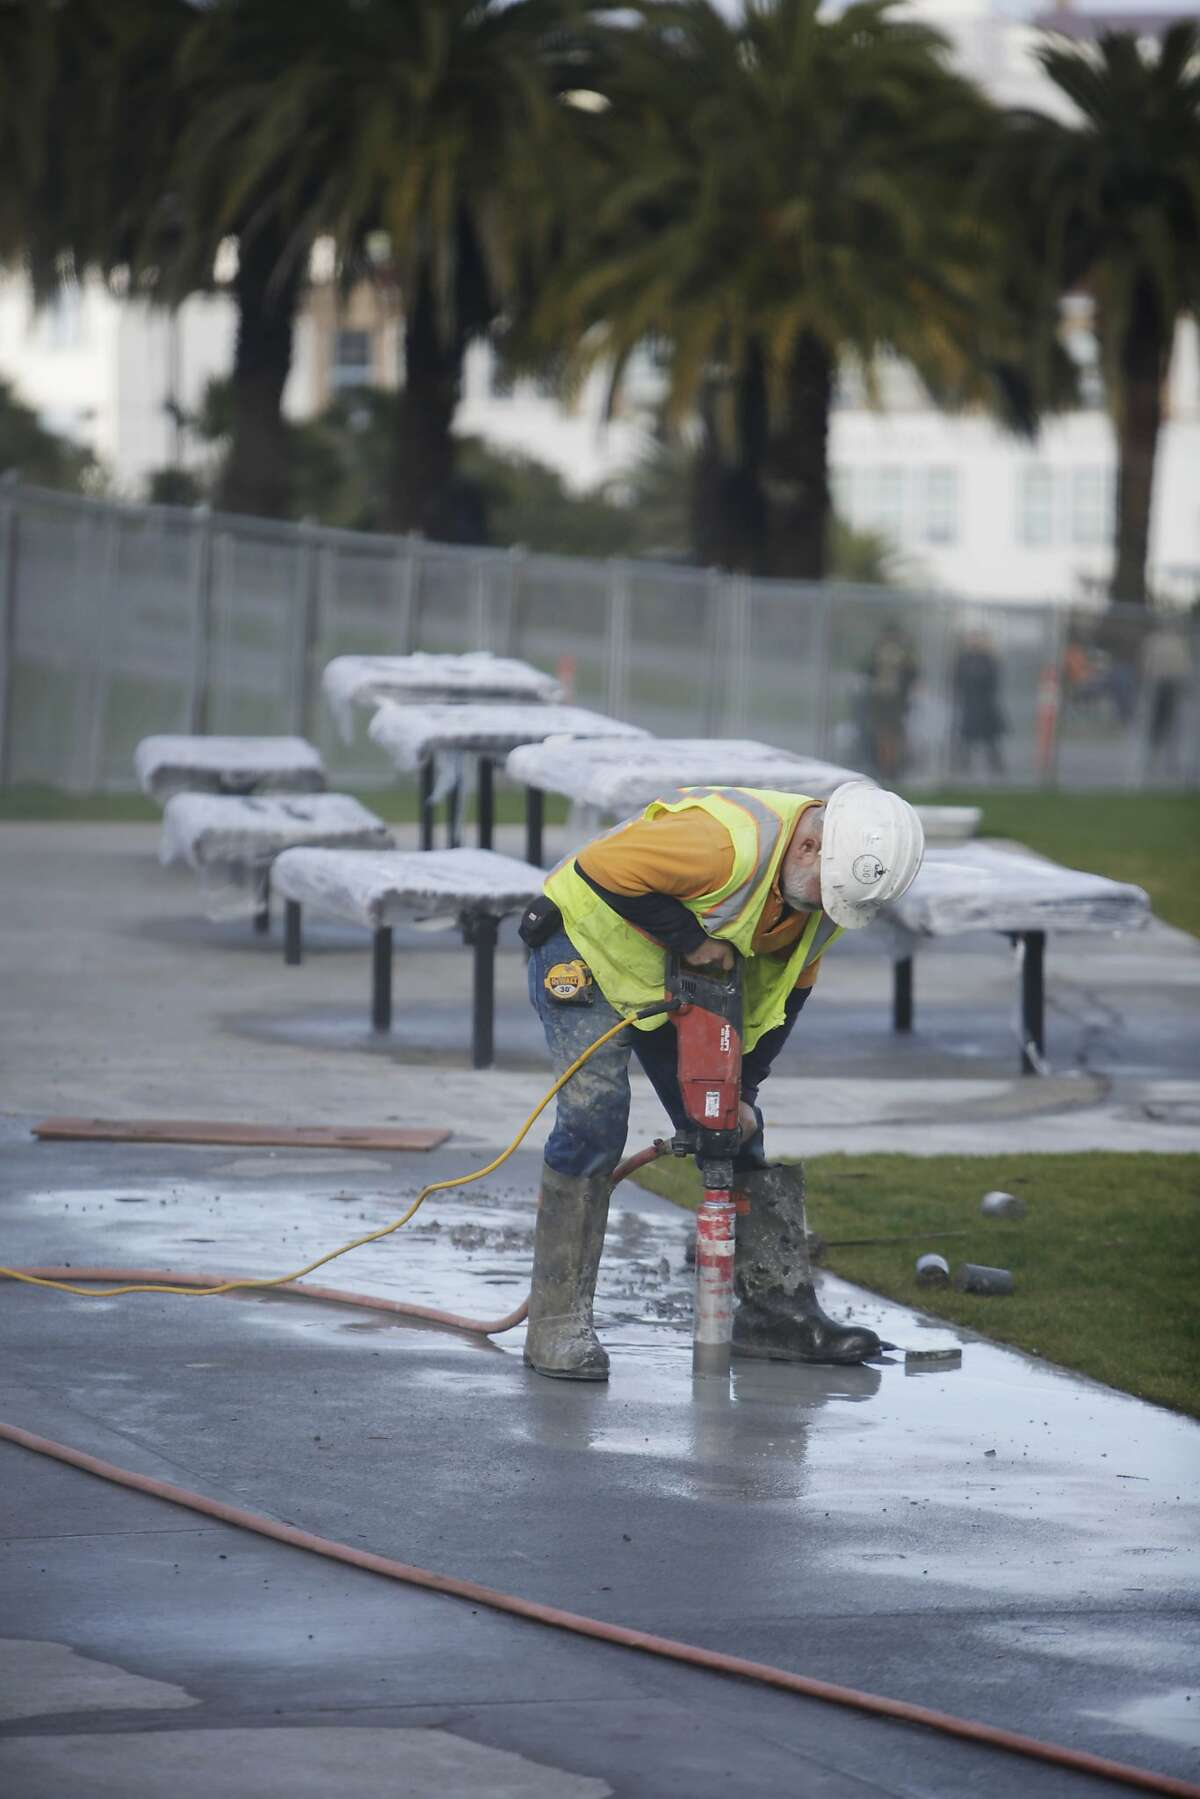 Rodolfo Vargas, Bauman laborer, makes holes for the new bike rack during the renovation of the south side of Dolores Park on Thursday, January 7, 2015 in San Francisco, Calif.